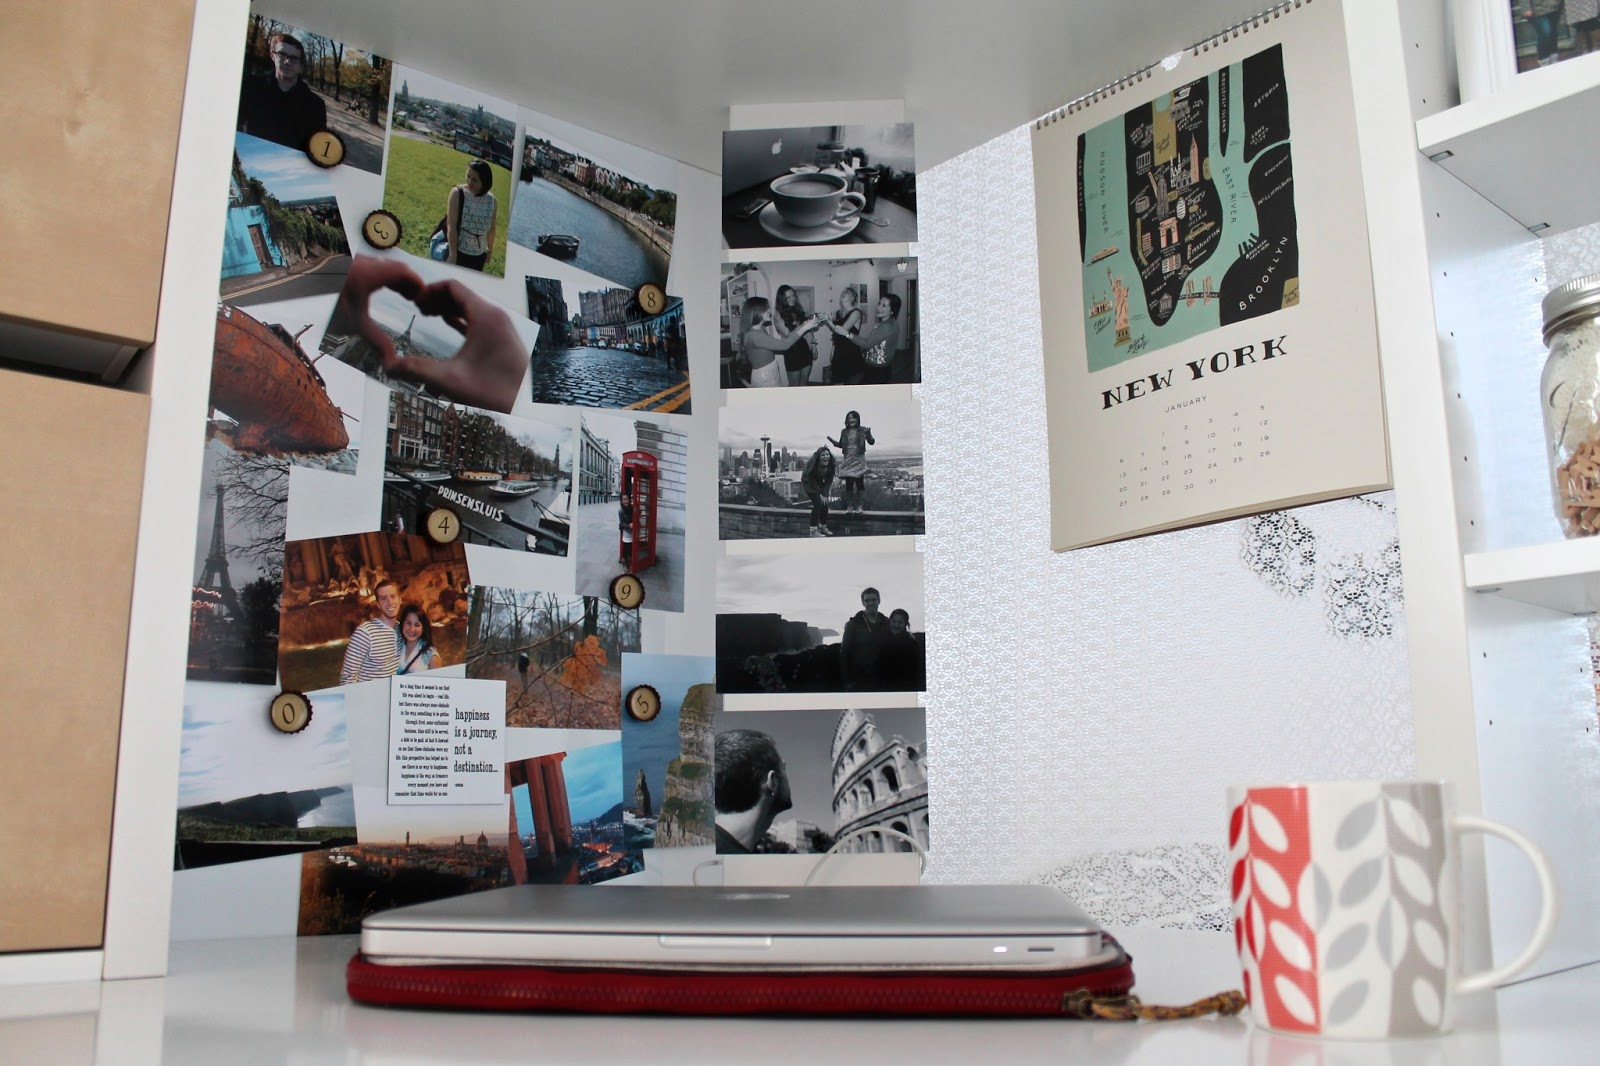 diy-photo-display-with-magnets-for-college-apartment